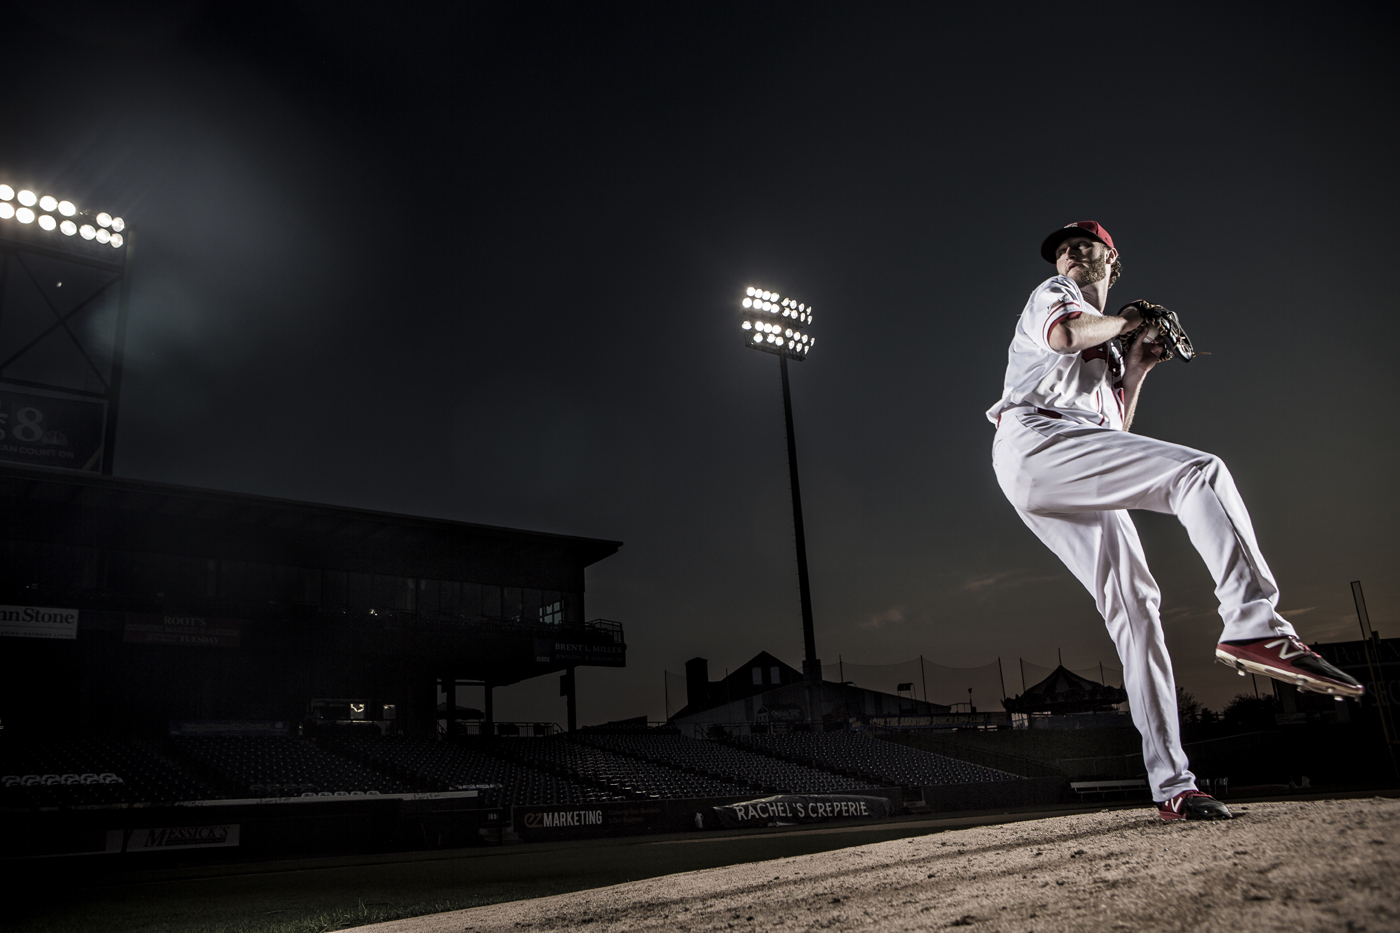 Baseball Pitcher Photograph